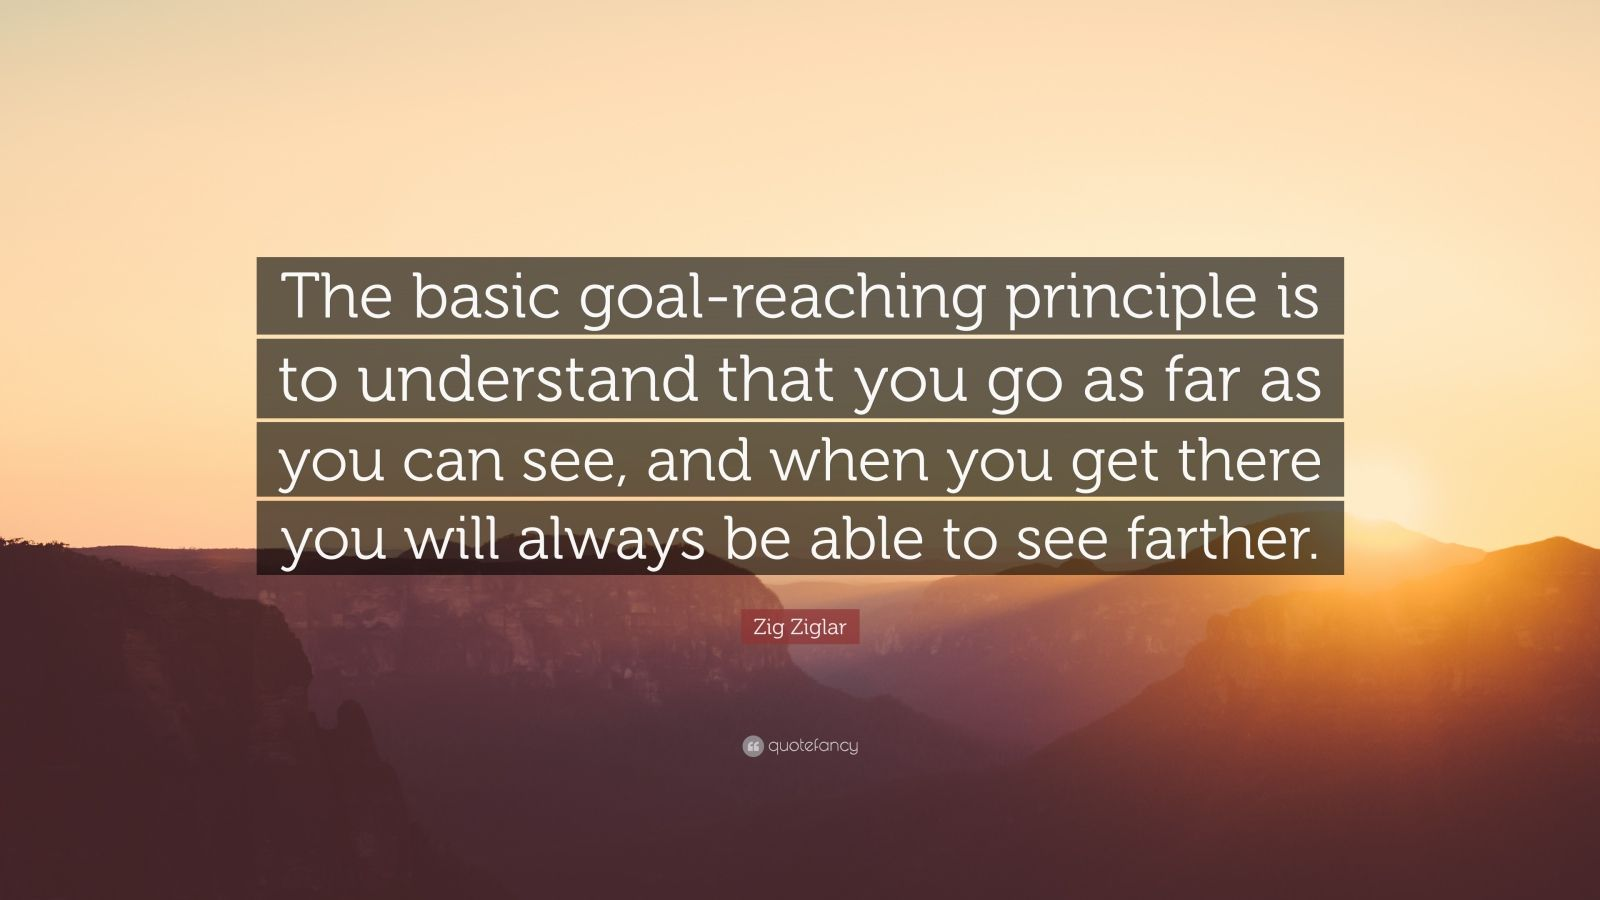 """Zig Ziglar Quote: """"The basic goal-reaching principle is to understand that you go as far as you can see, and when you get there you will always be able to see farther."""""""